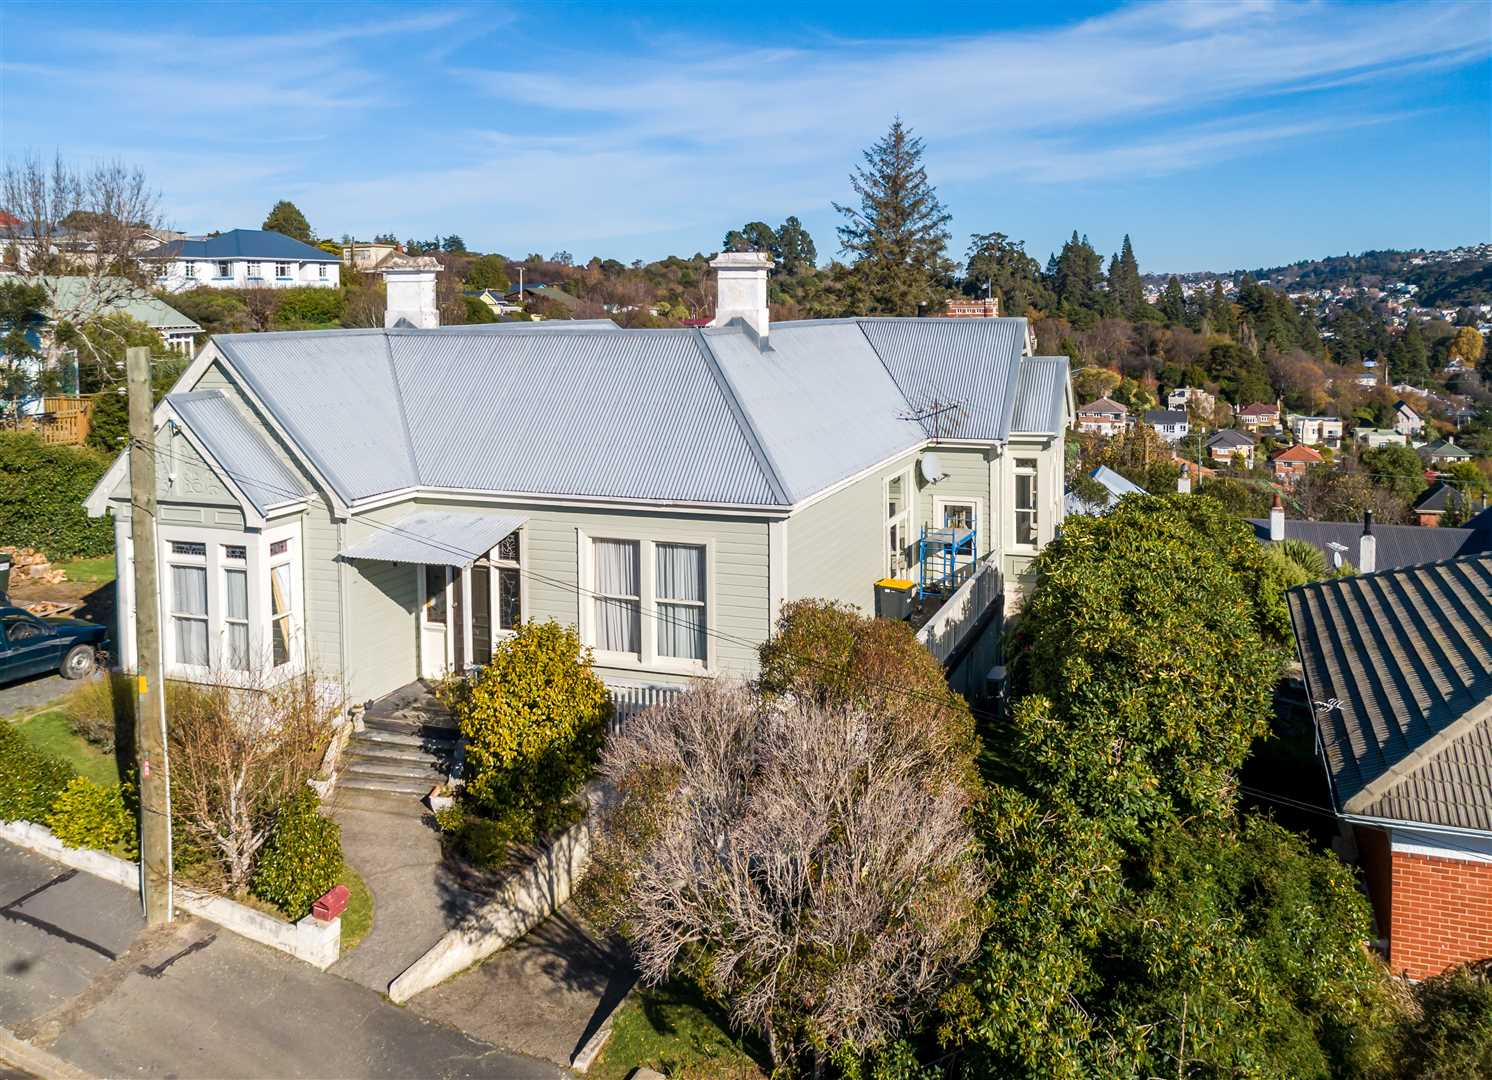 Owners Farewell Their Character Family Home